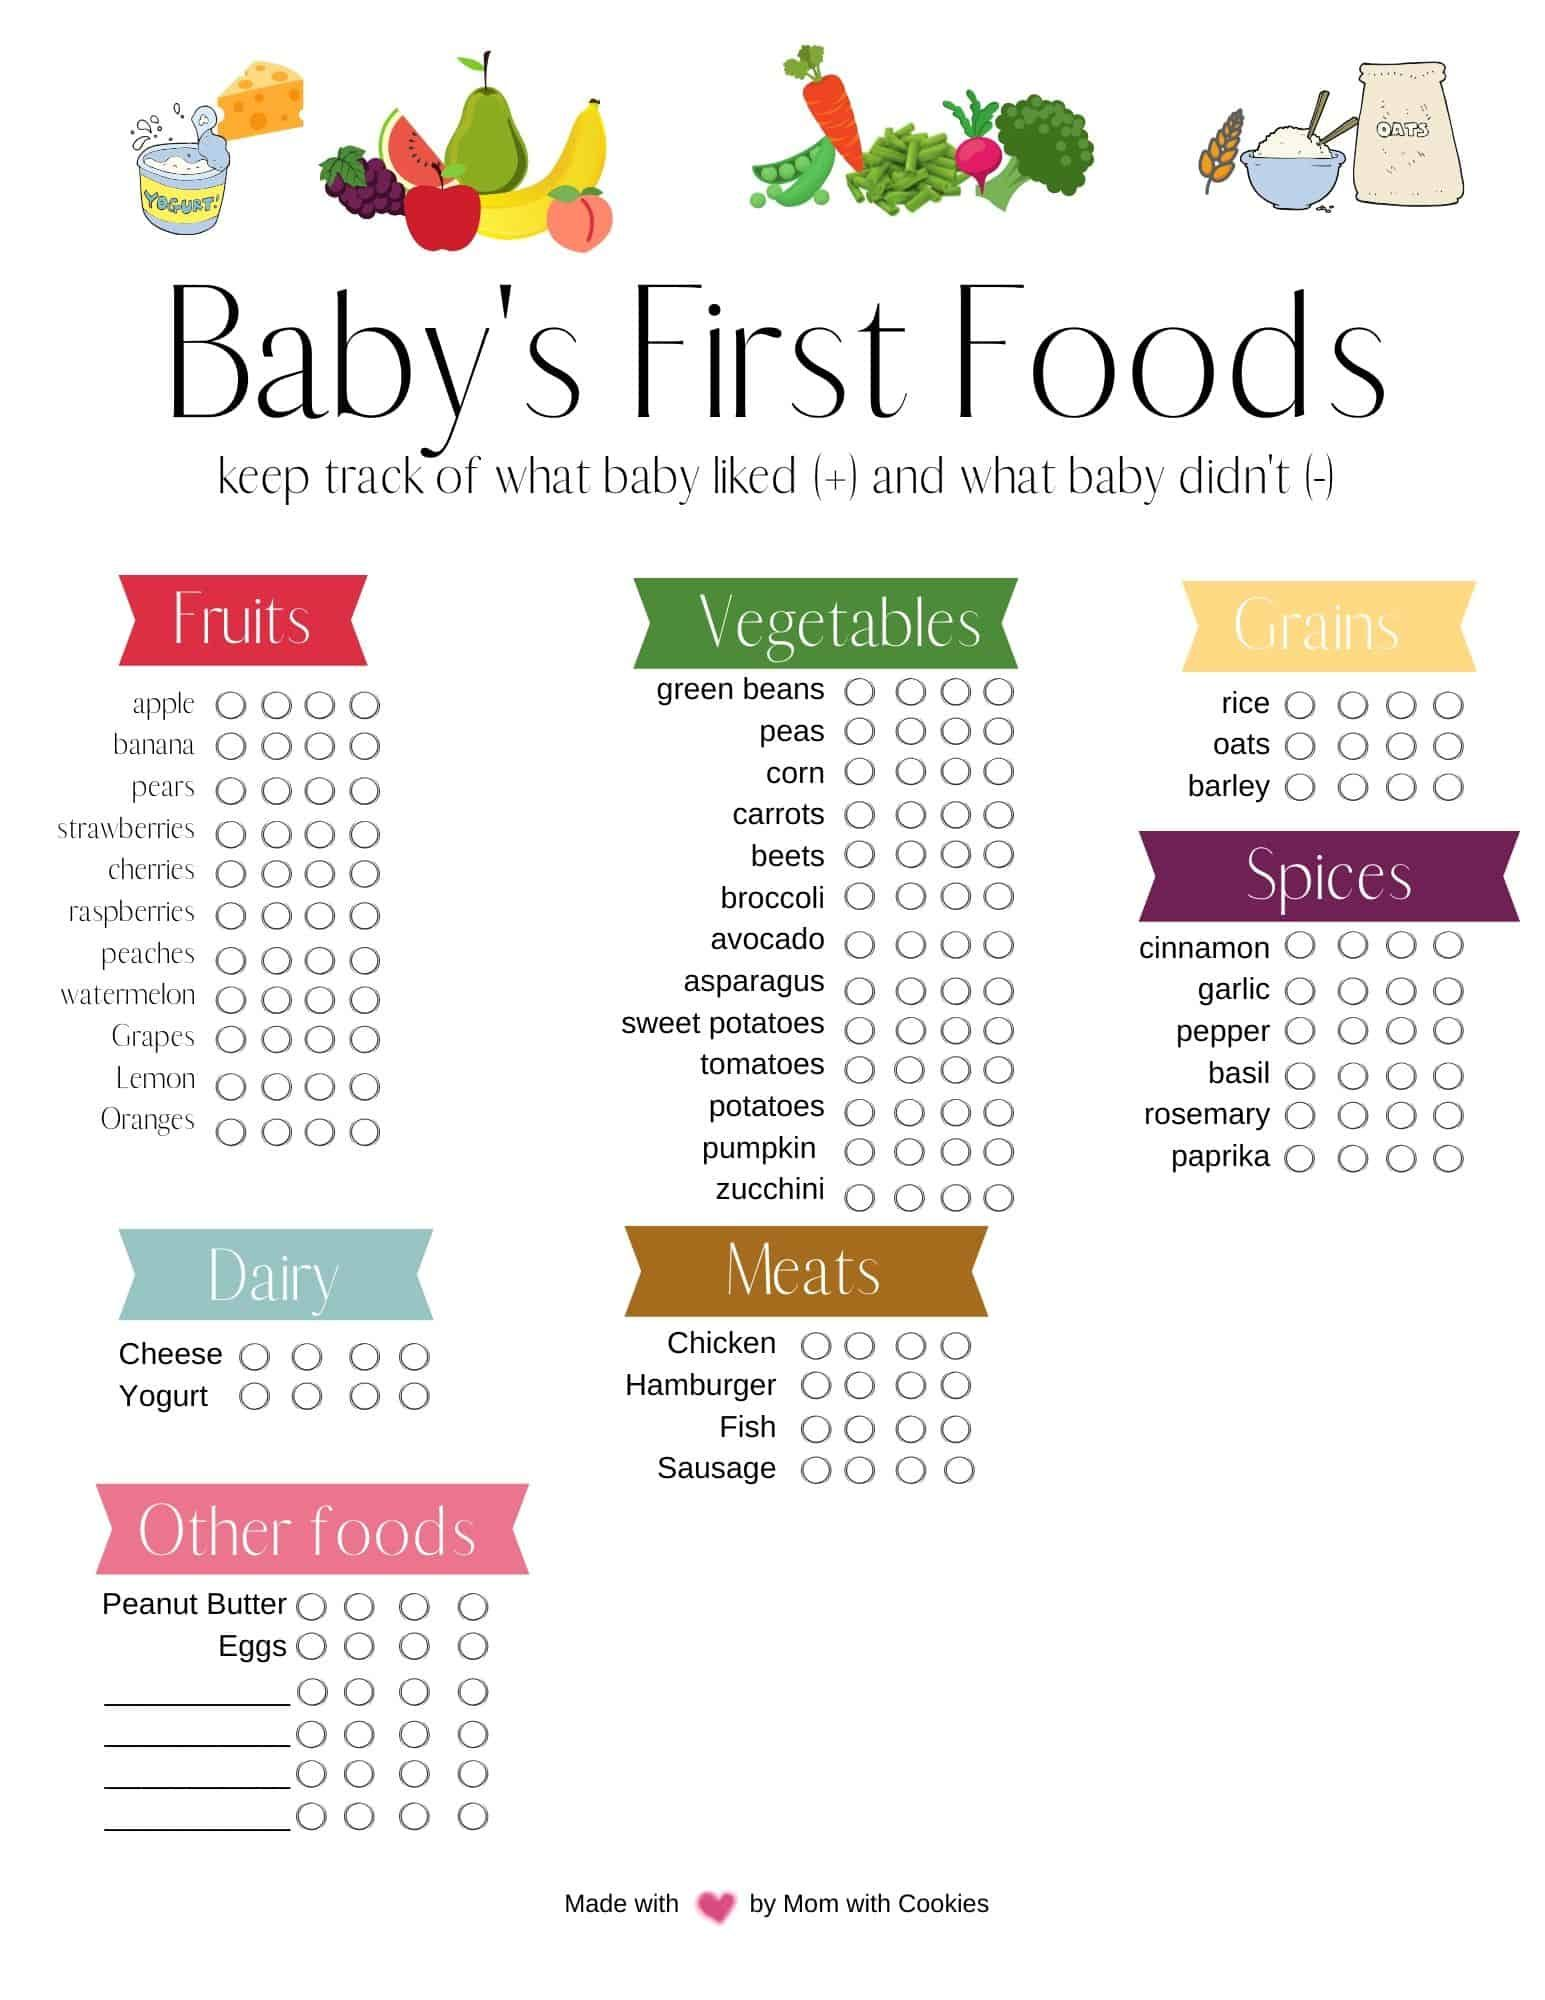 Introducing Baby Food: The Basics - She's Your Friend